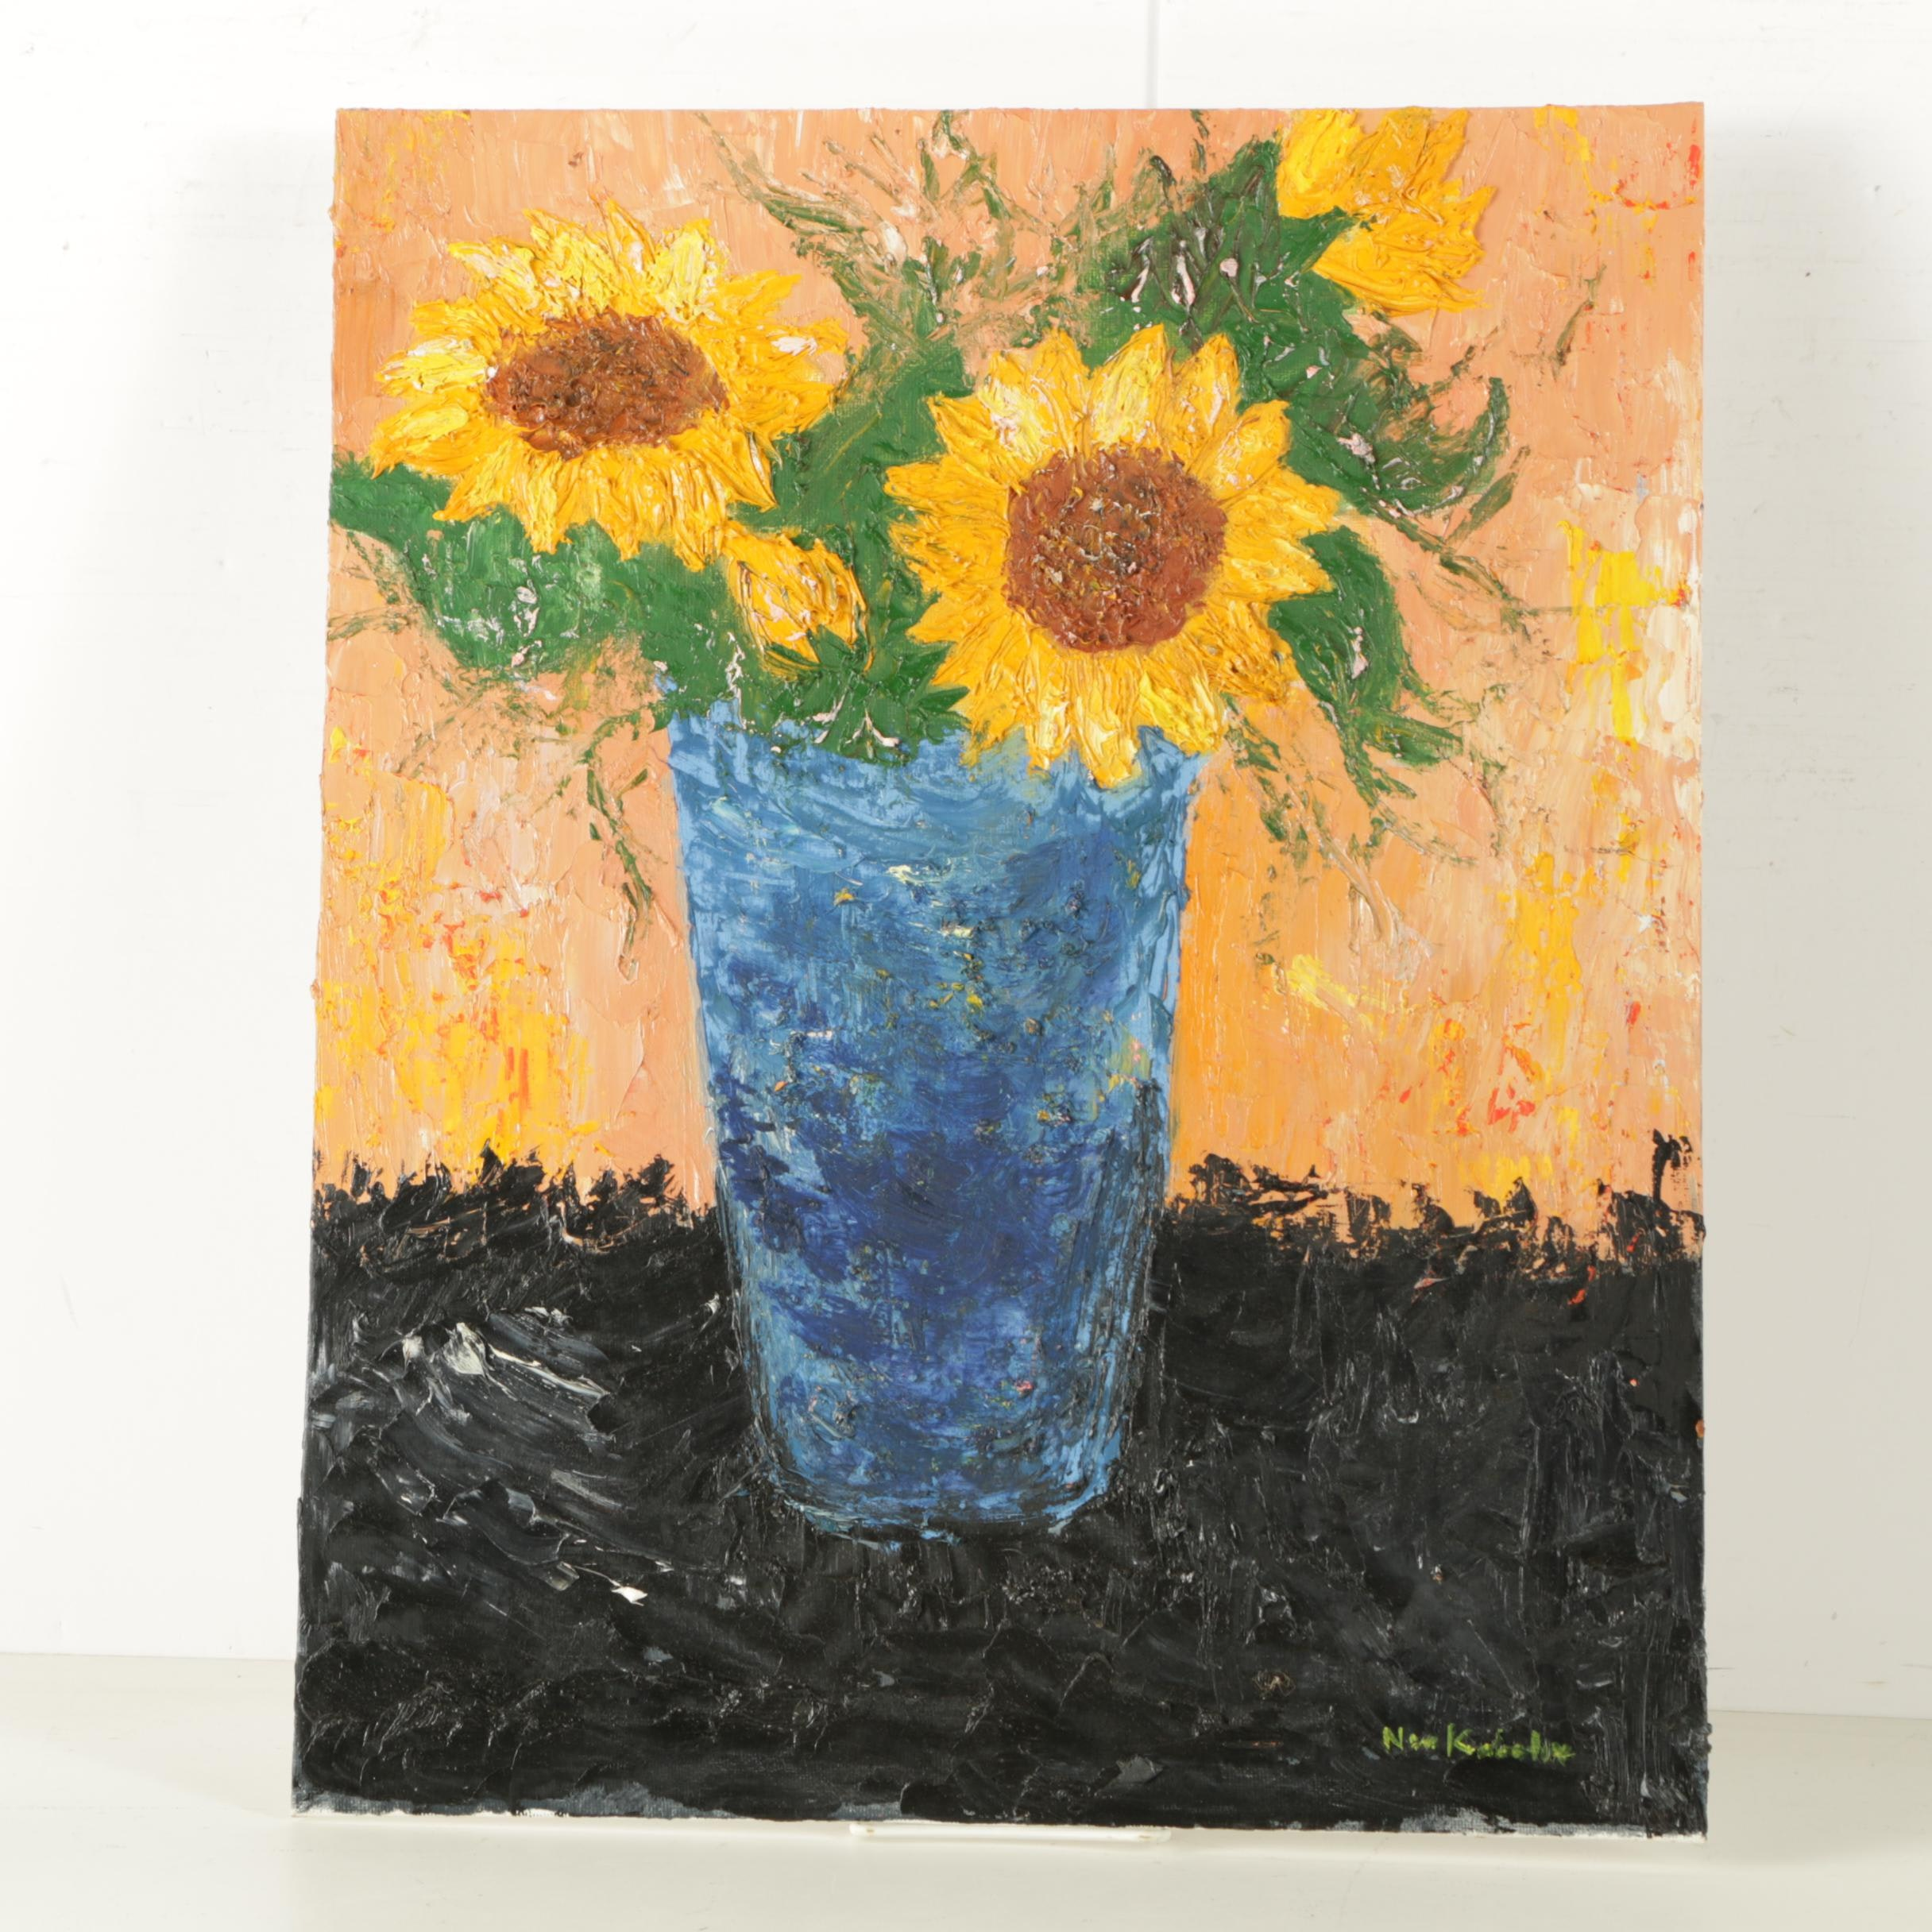 Nora Kaboulov Oil Painting on Canvas Board of Sunflowers